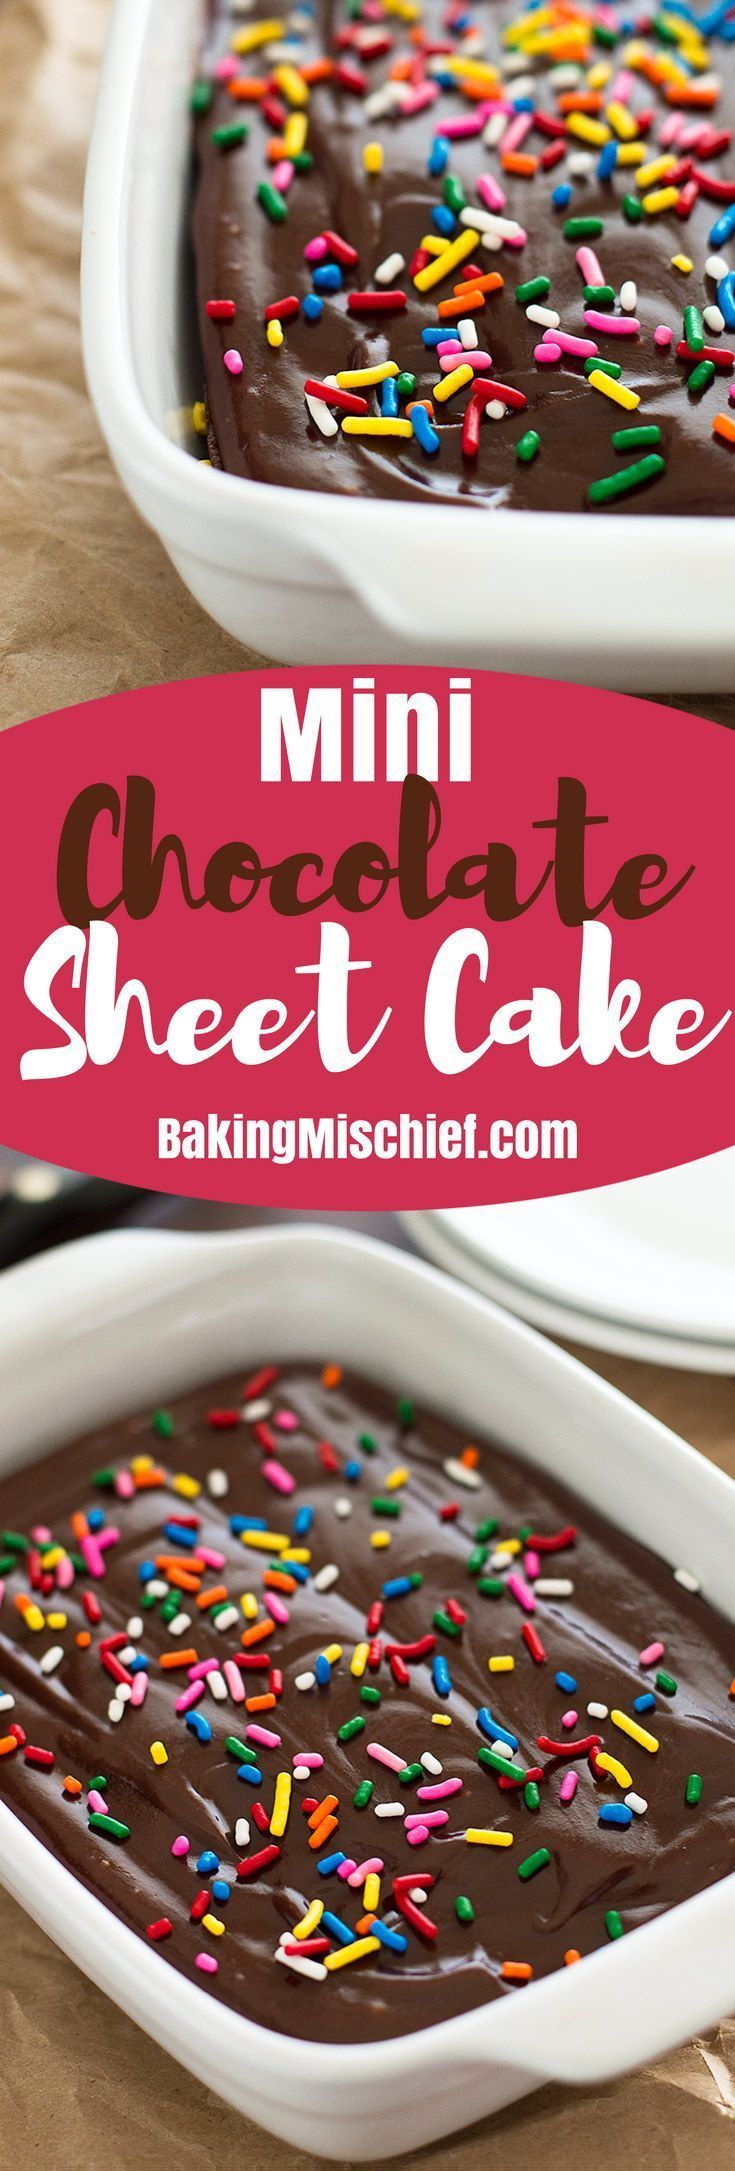 This easy Mini Chocolate Sheet Cake from scratch is moist, rich, and delicious! From http://BakingMischief.com